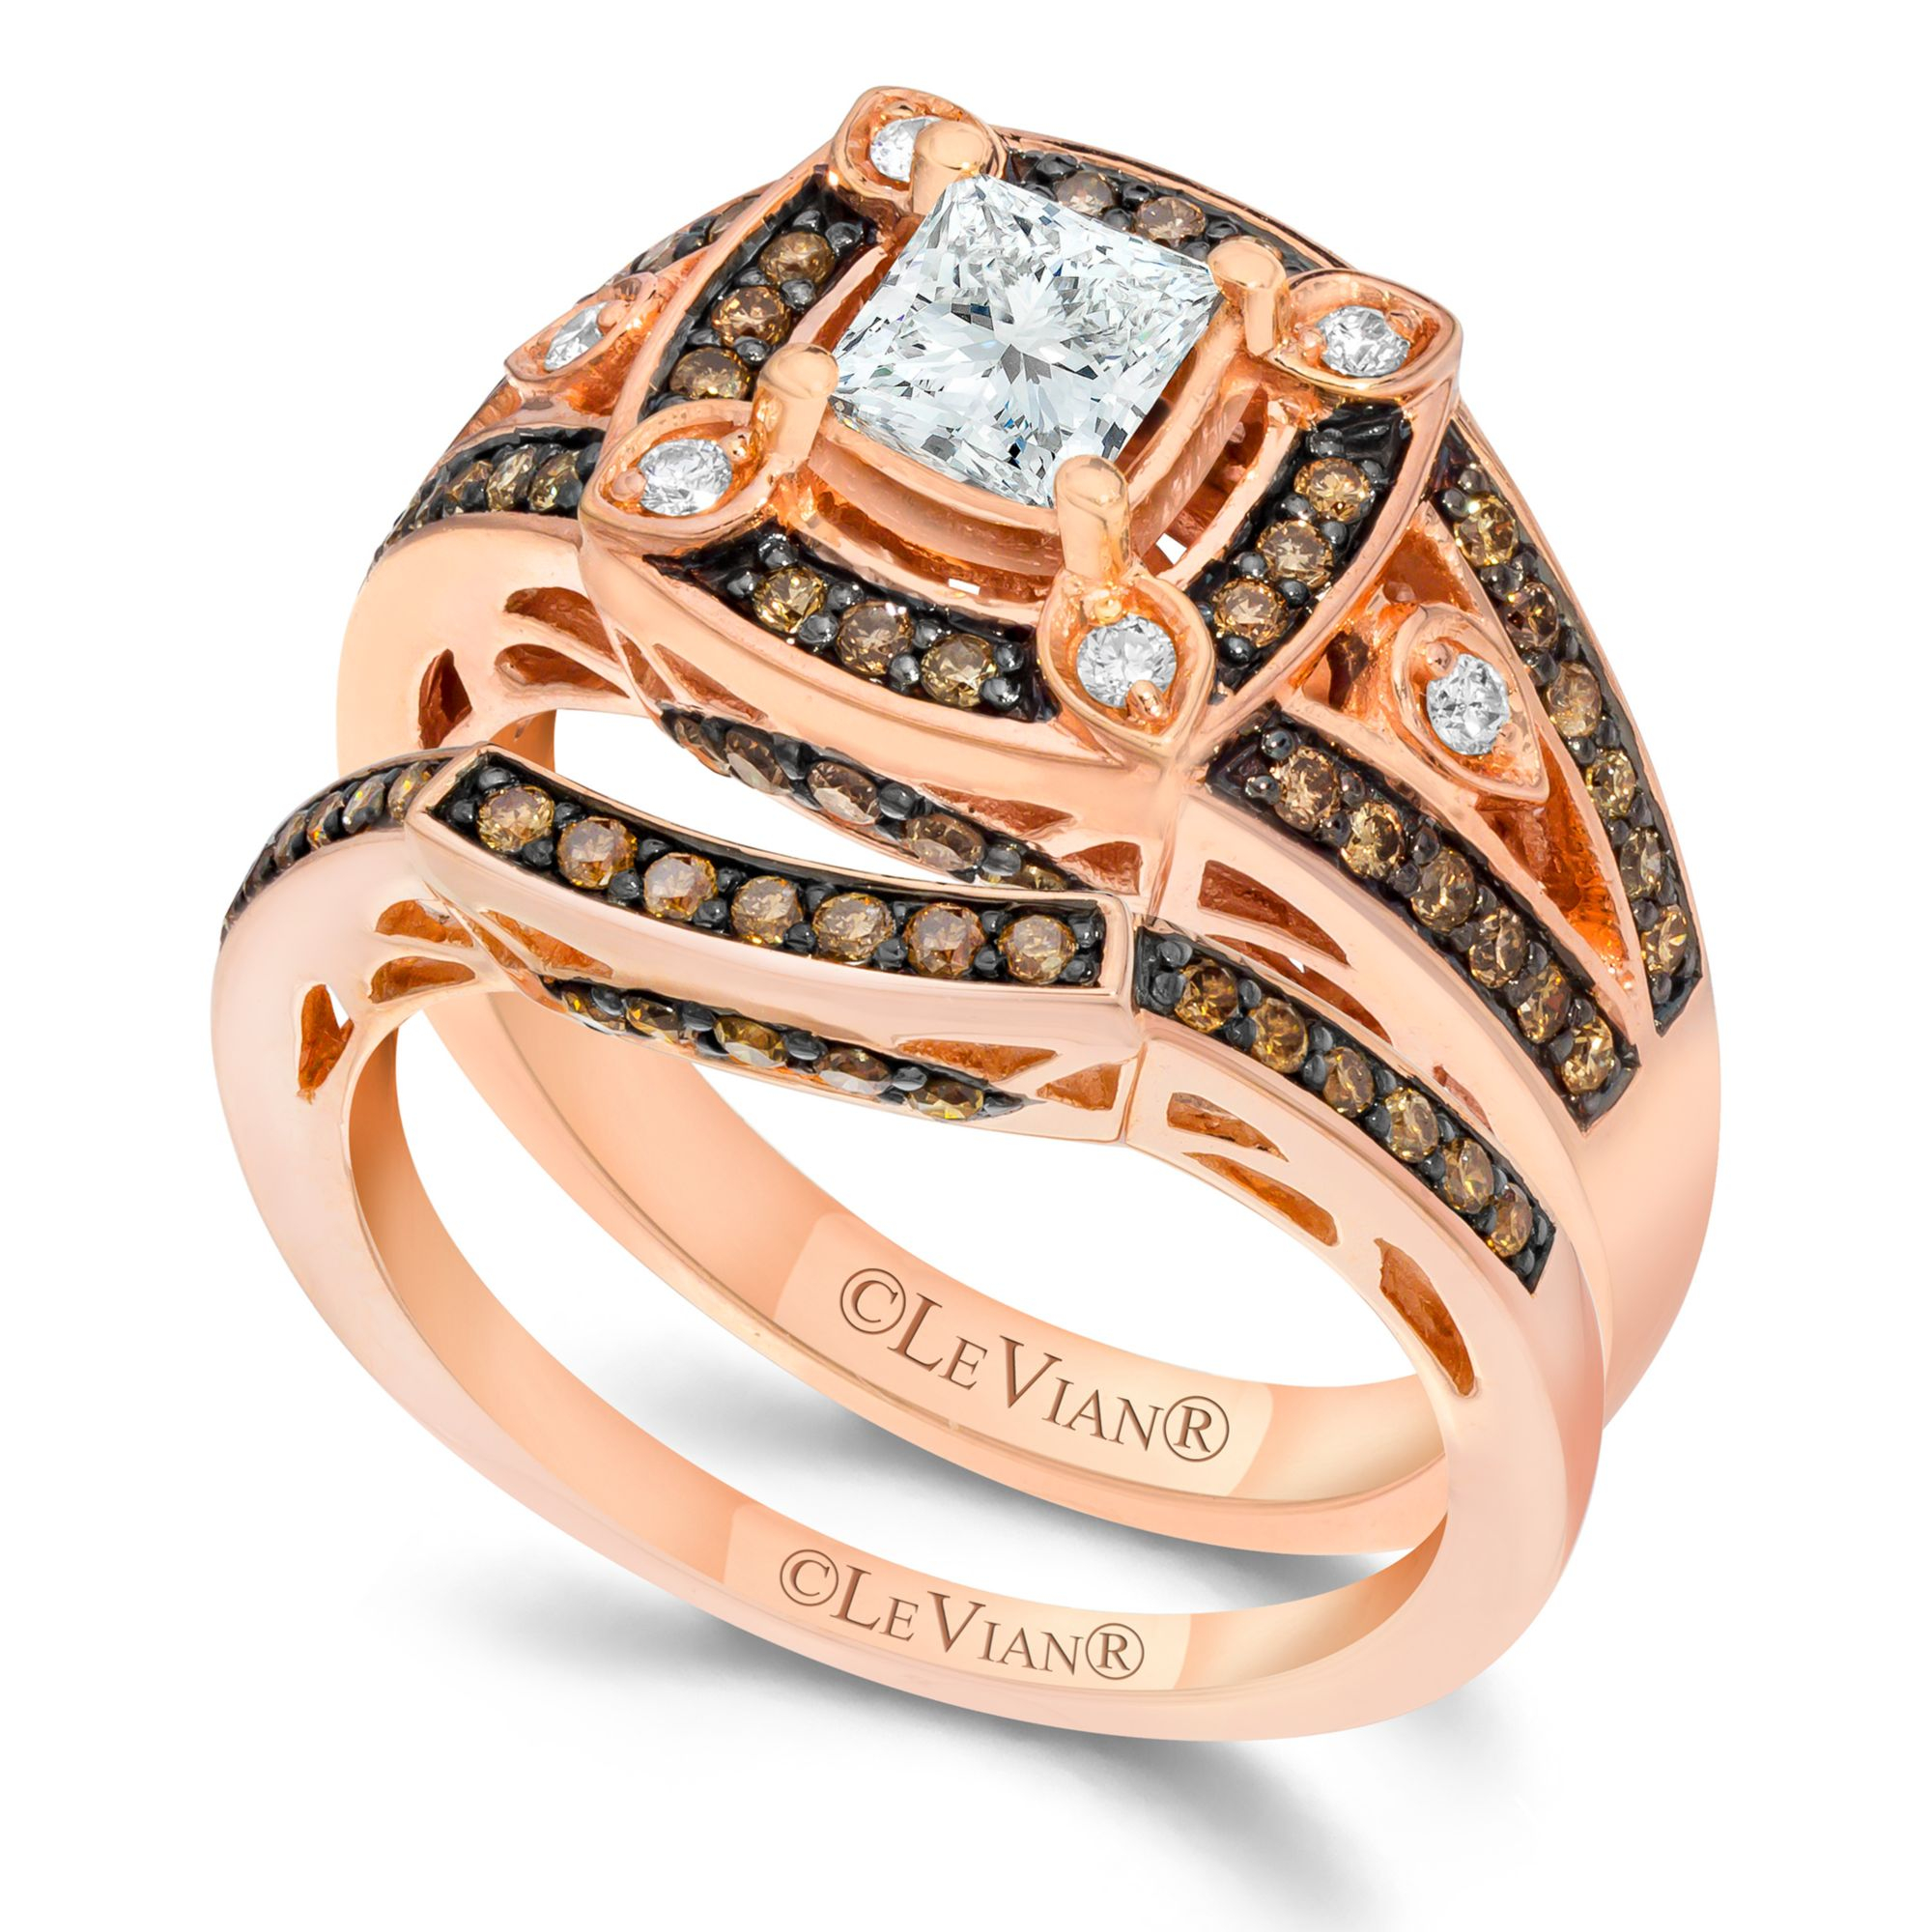 Lyst Le Vian Chocolate and White Diamond Engagement Ring Set in